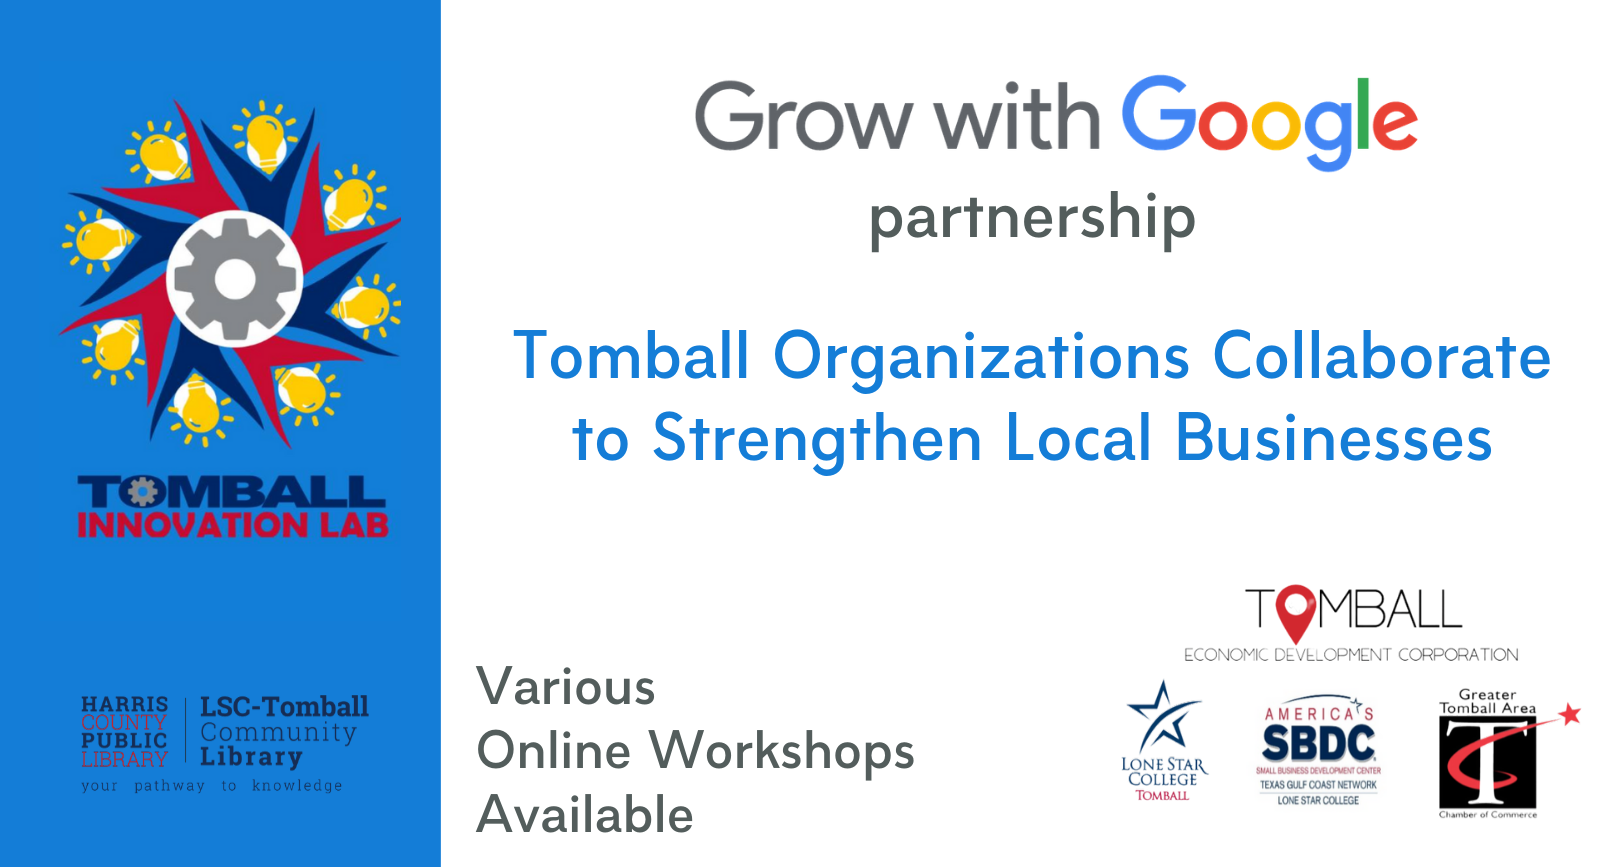 Tomball Innovation Lab partners with Google